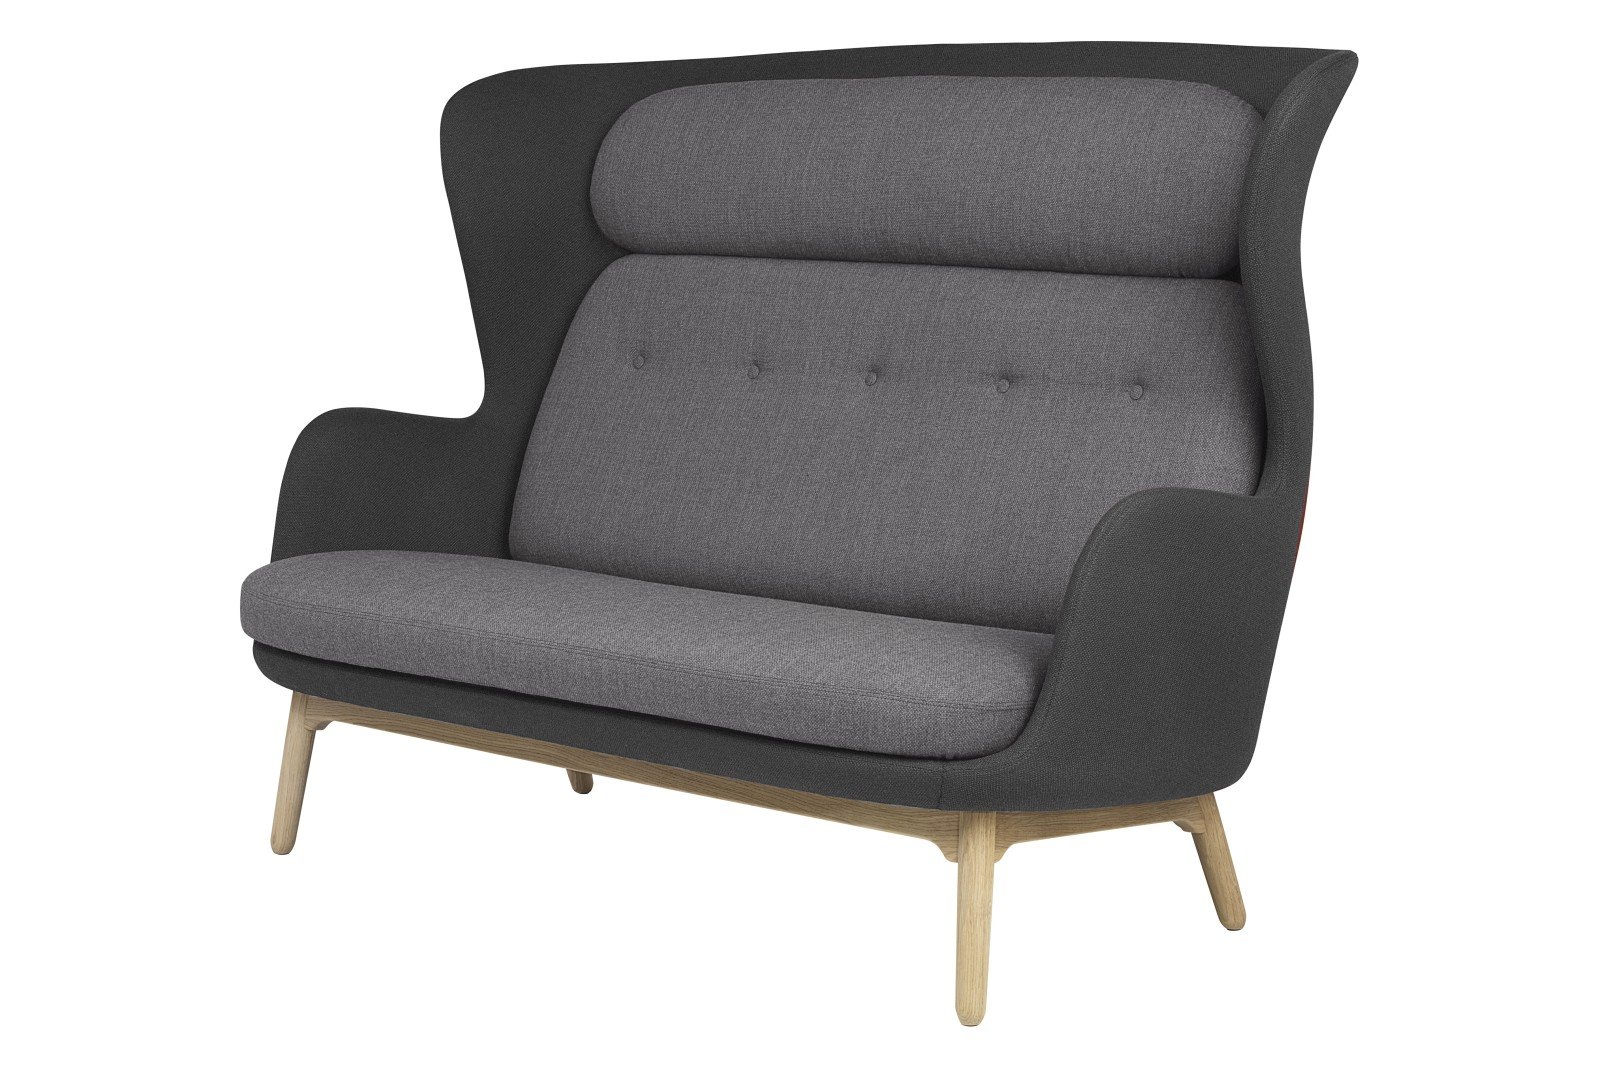 Ro 2-Seater Sofa with Wooden Base - Designer Selection dark grey